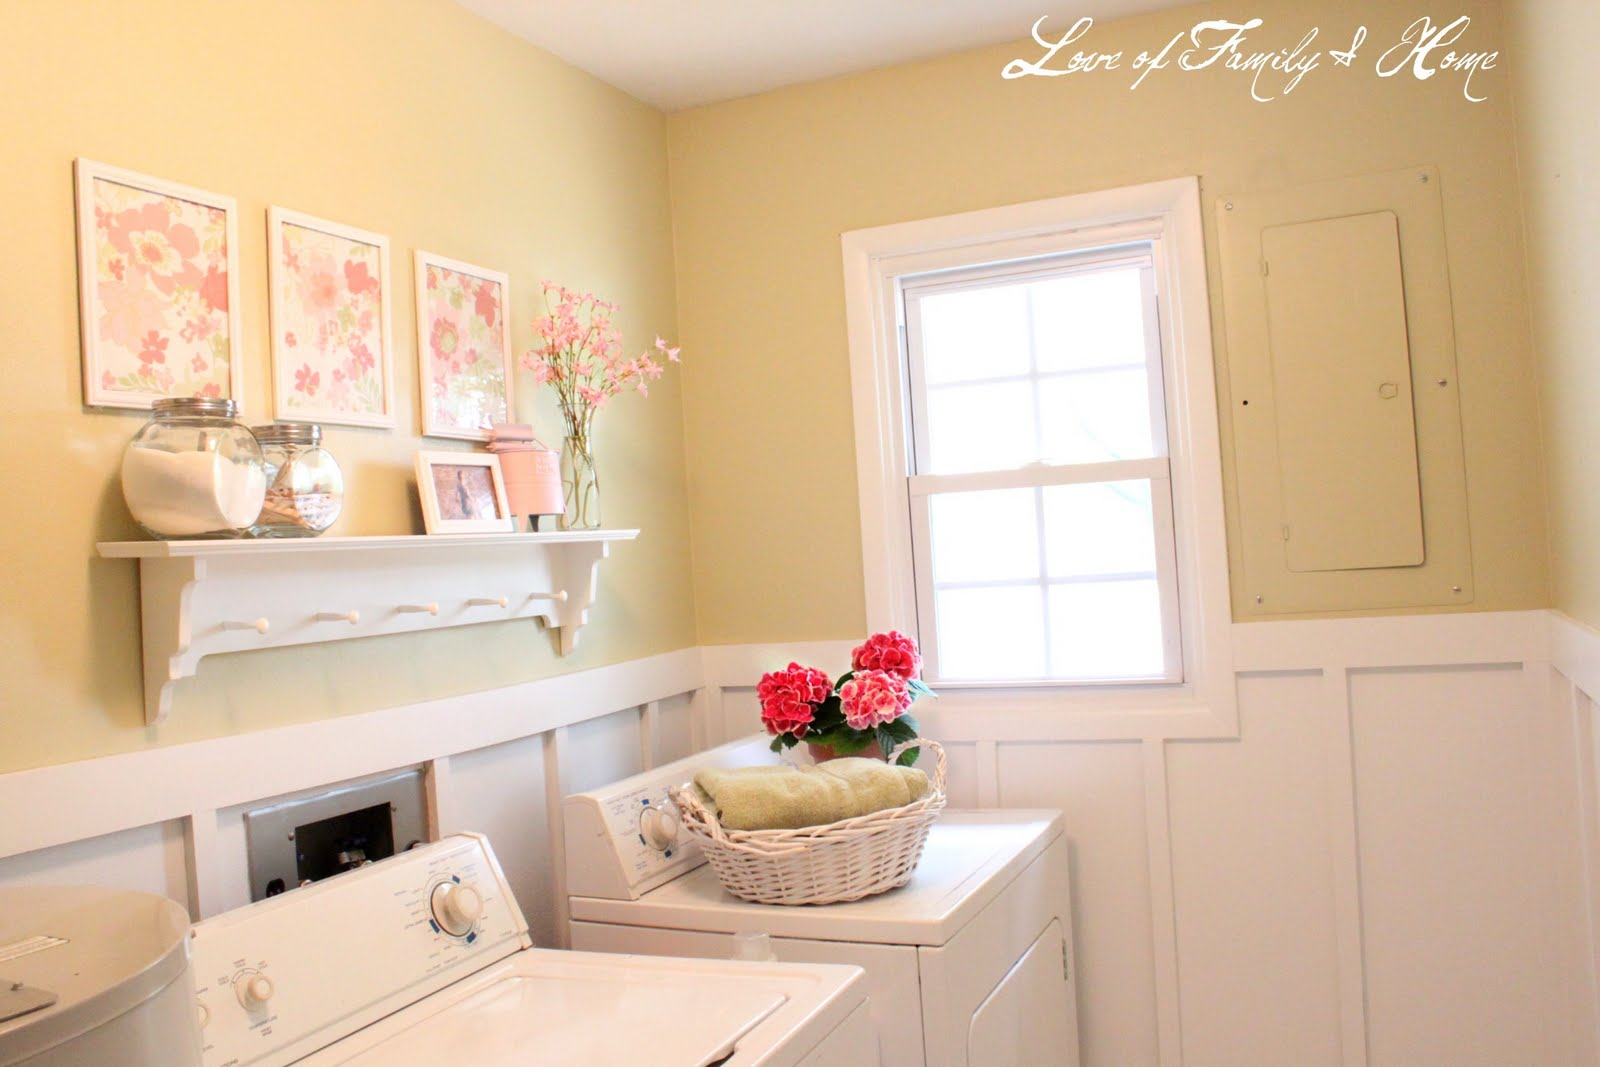 Diy cheap wall art love of family home - Paint colors for laundry room ...